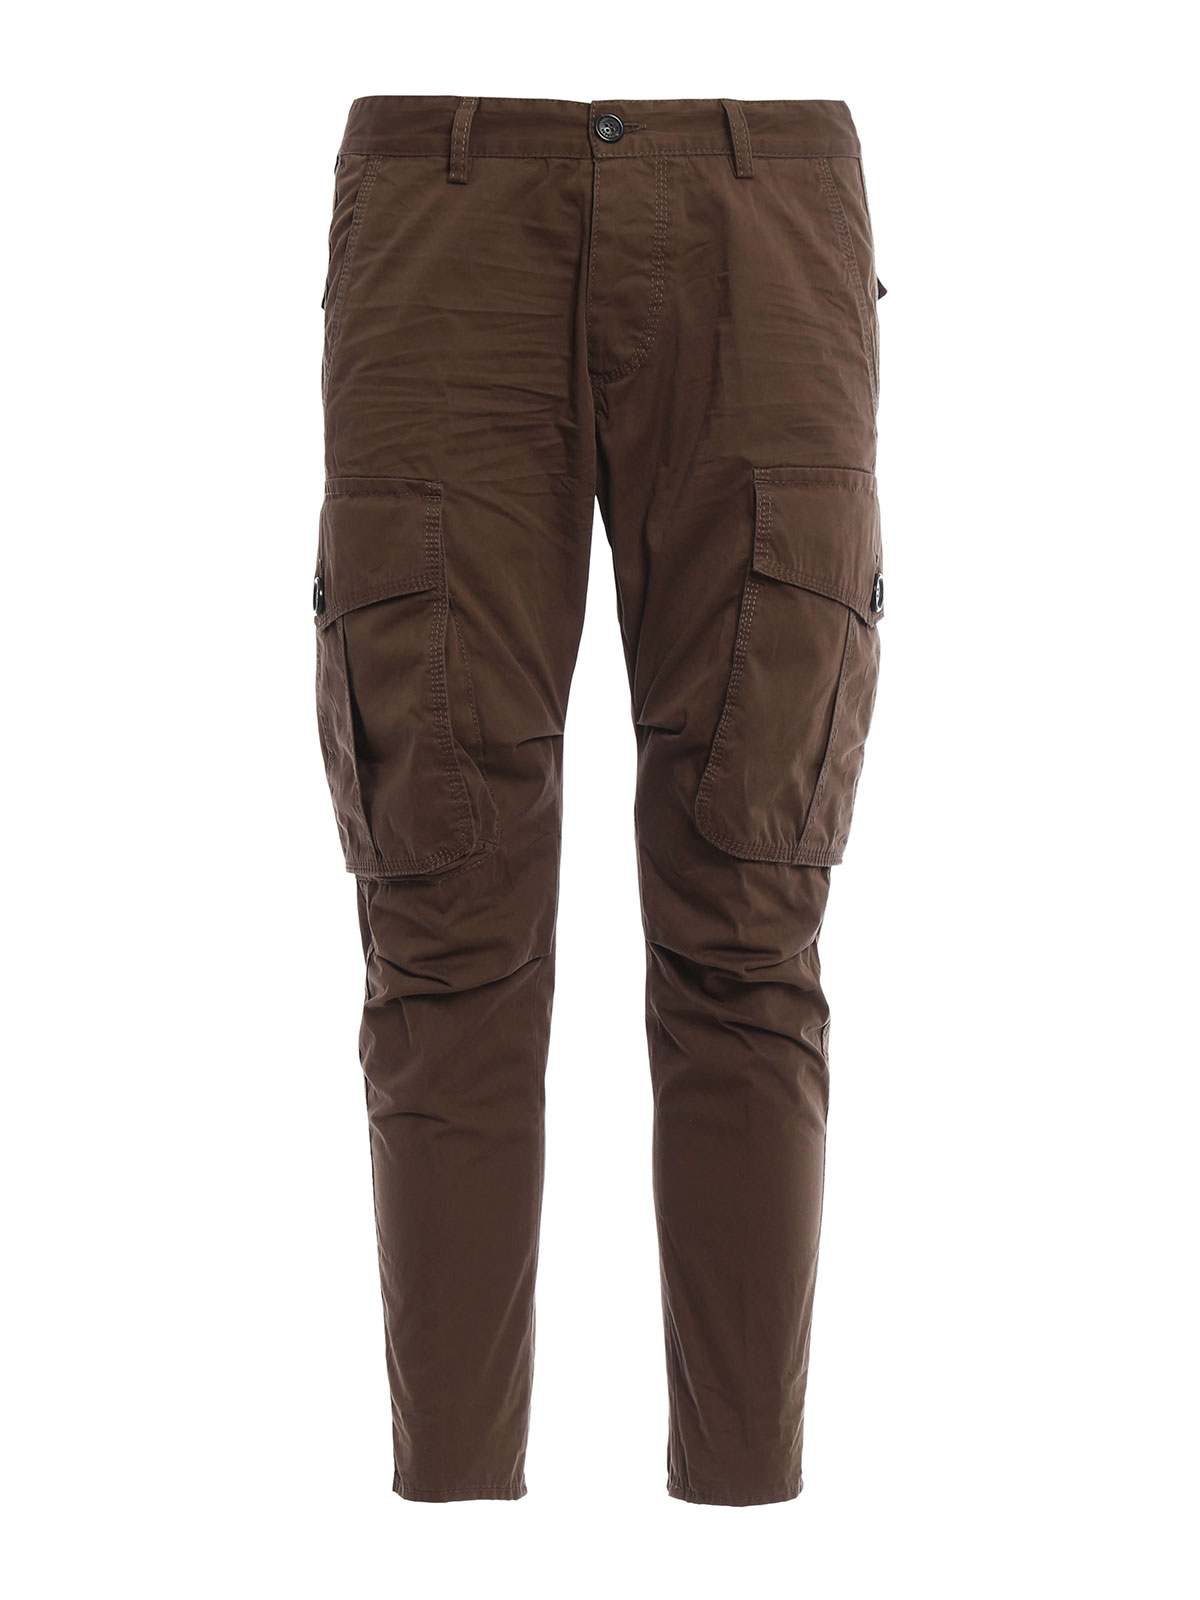 Men's Drop Crotch Pants Shop the impressive collection of drop crotch pants at Farfetch and lend your look a cutting-edge silhouette. Choose from ground-breaking labels like Rick Owens and KTZ for a look that will make a bold impression.